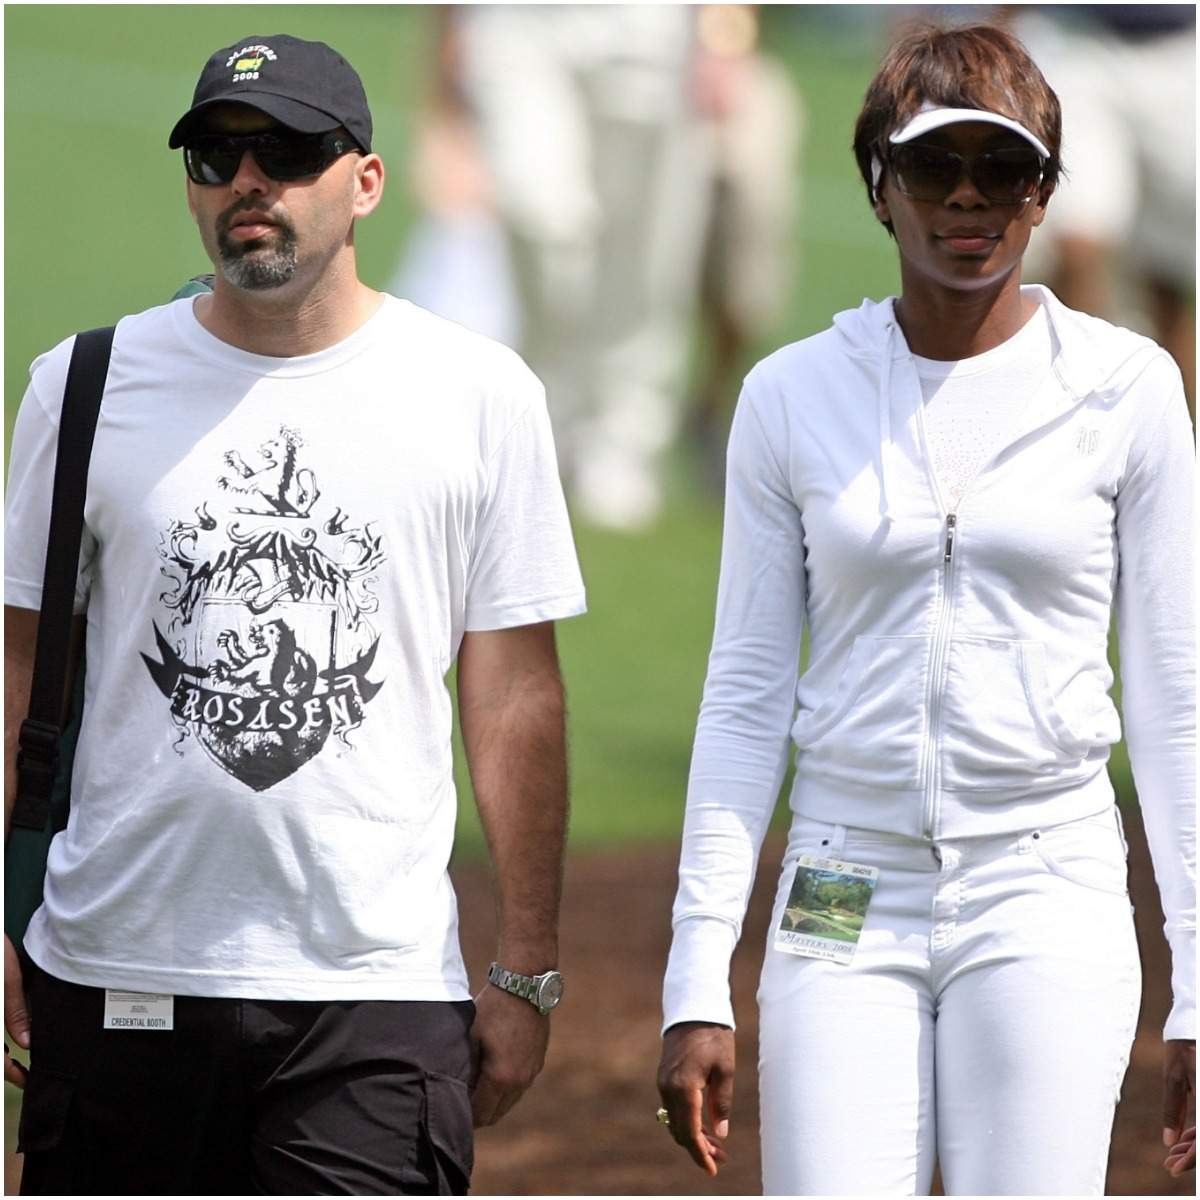 Venus Williams and her boyfriend Hank Kuehne